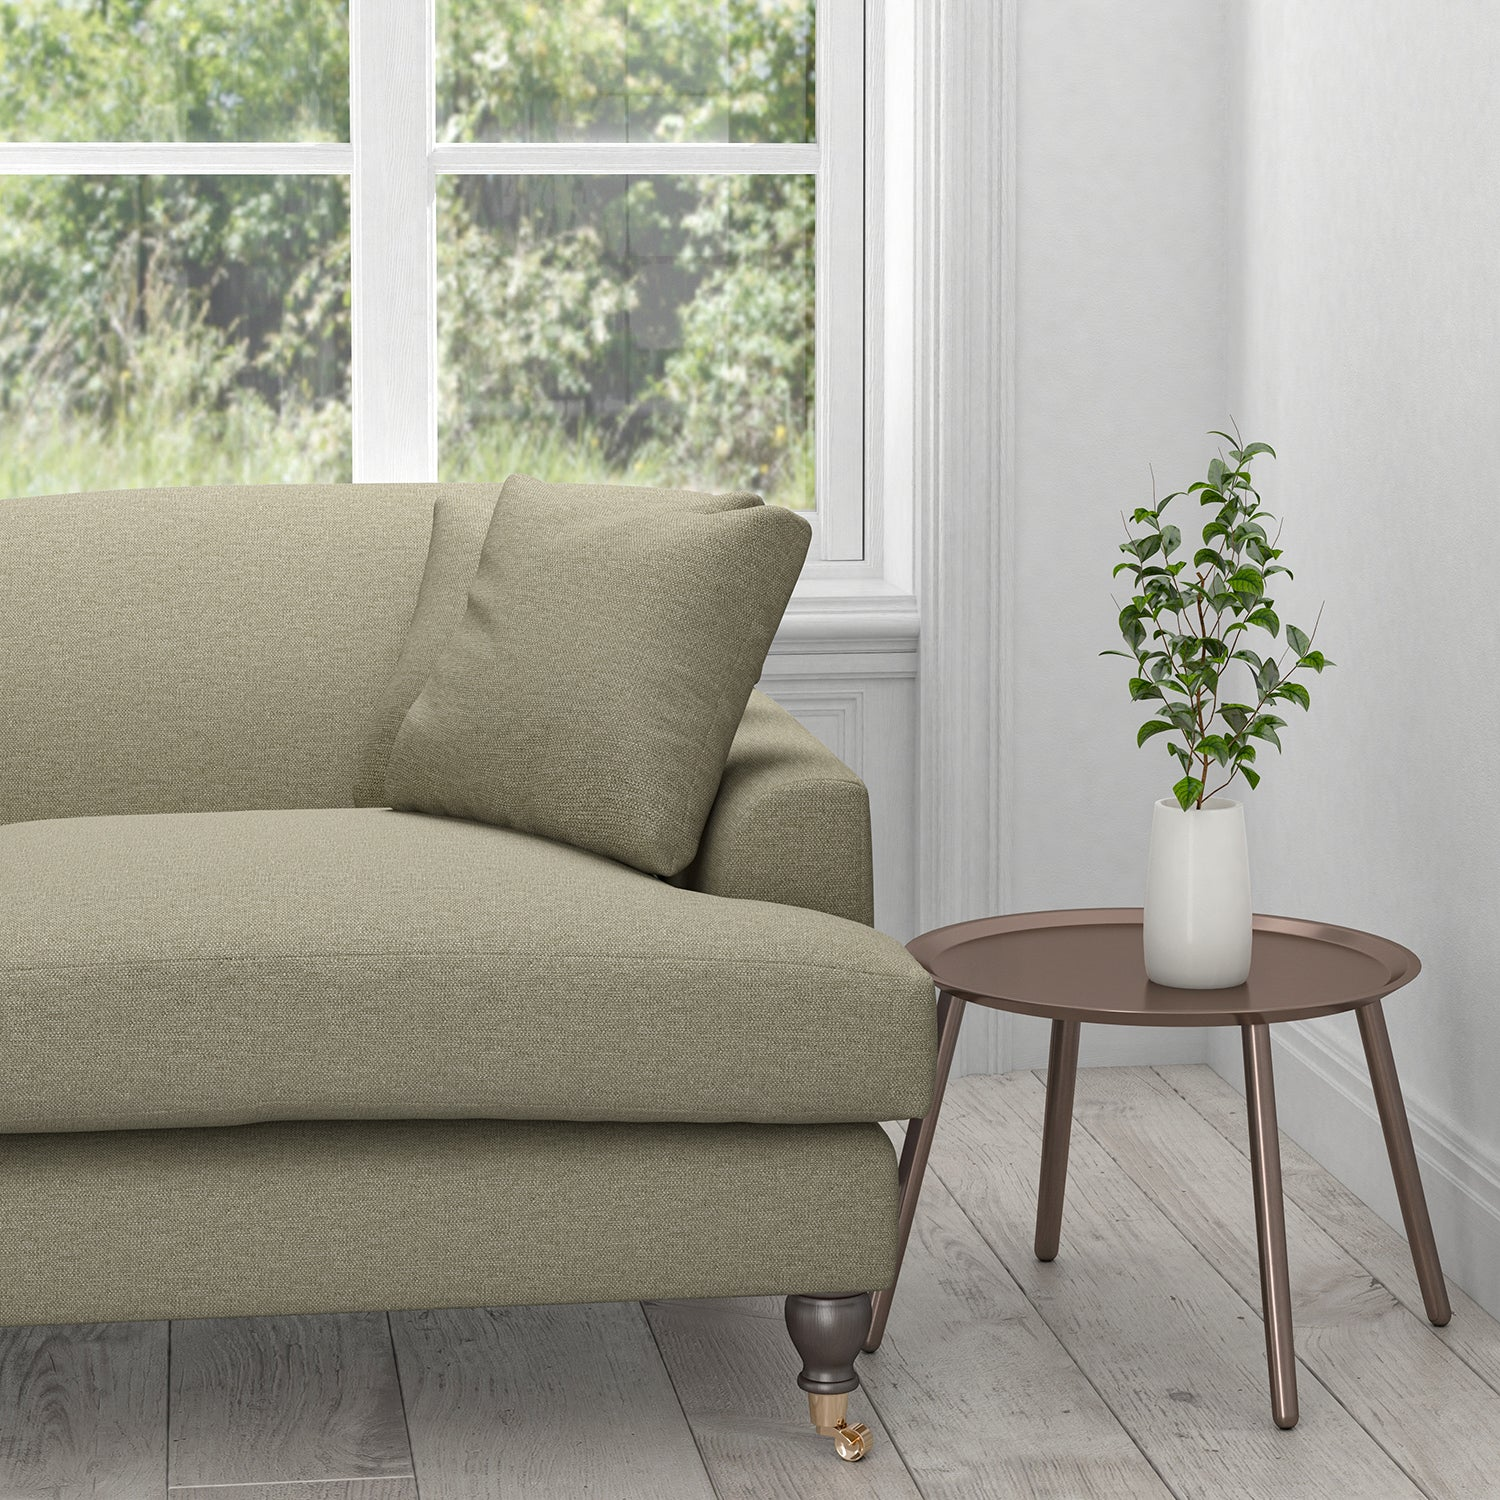 Sofa in a taupe cotton plain upholstery fabric